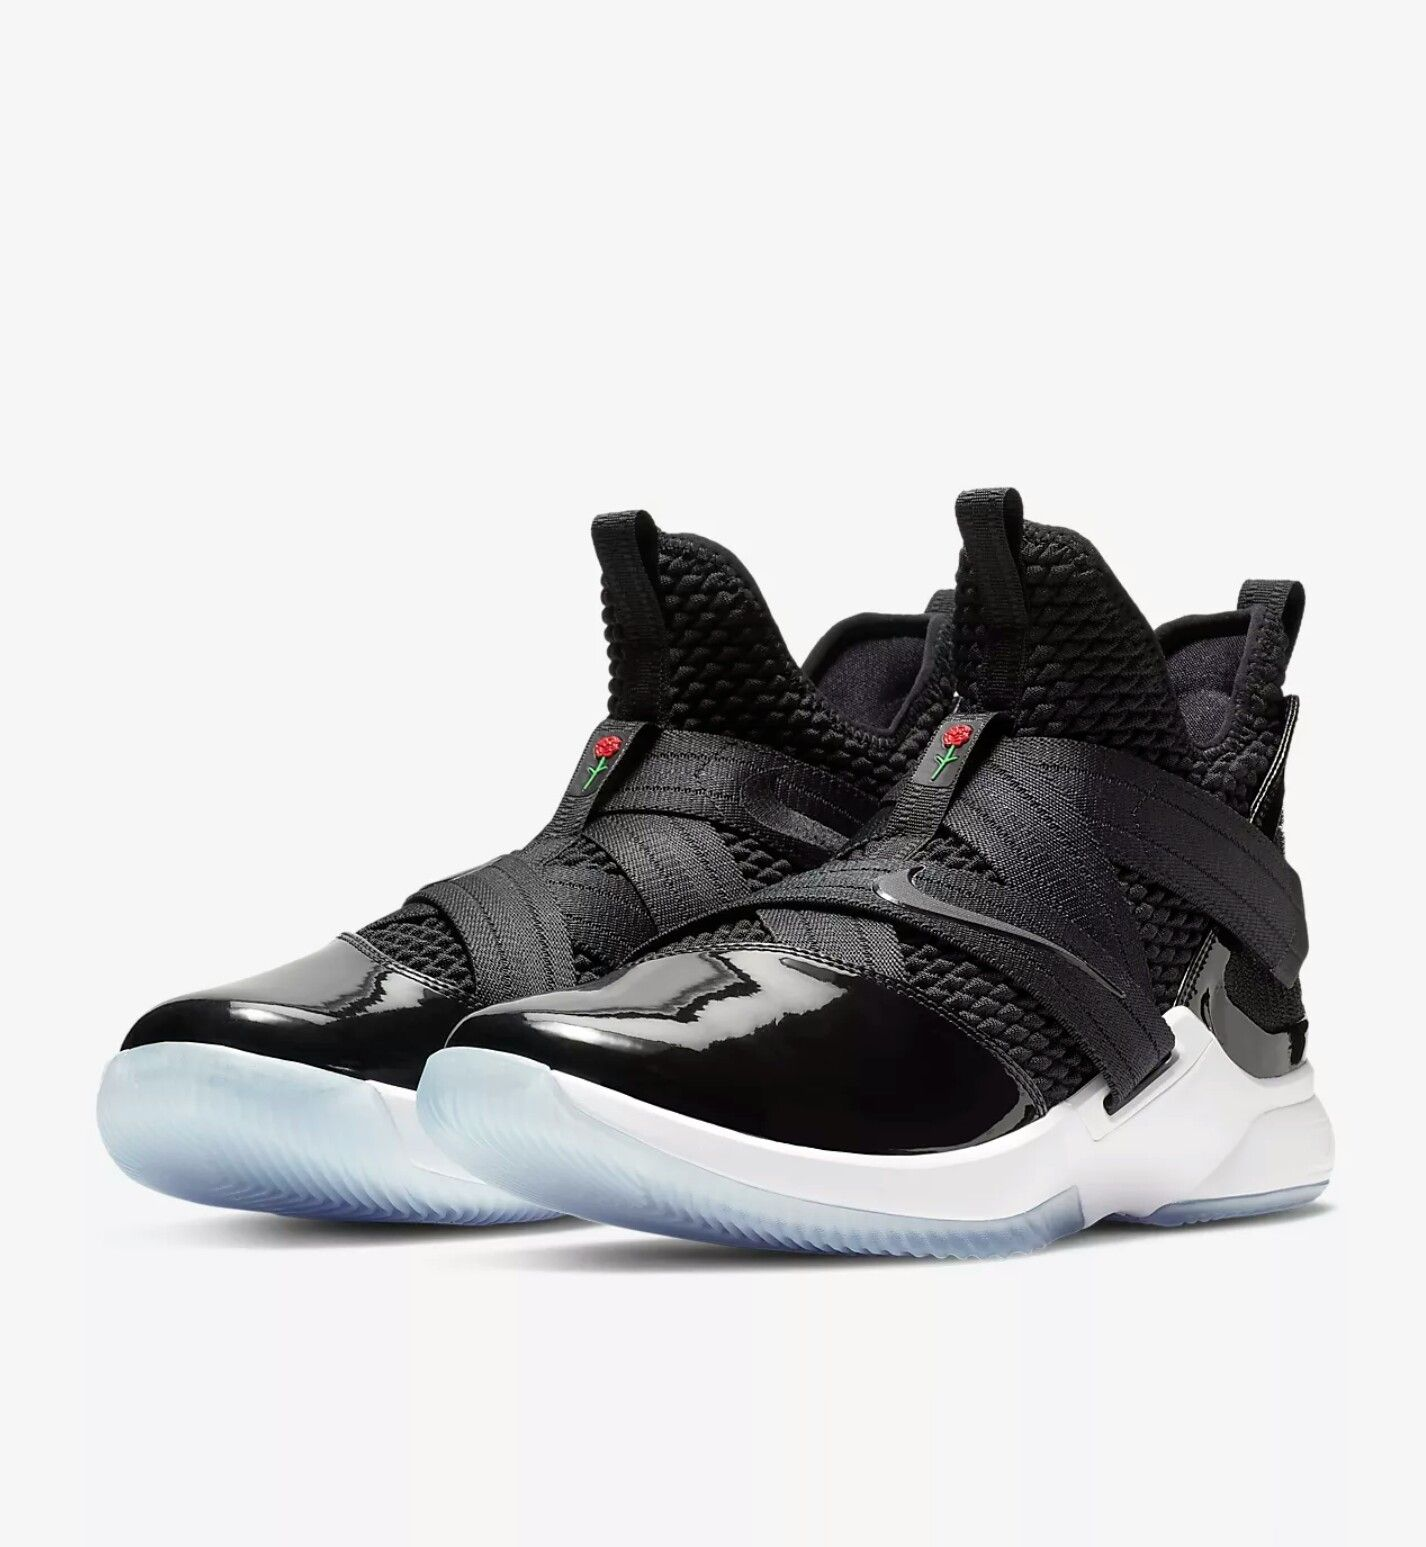 c13bf0e4b9be1 Lebron soldier 12 black Tuxedo | shoes in 2019 | Sneakers, Shoes, Nike